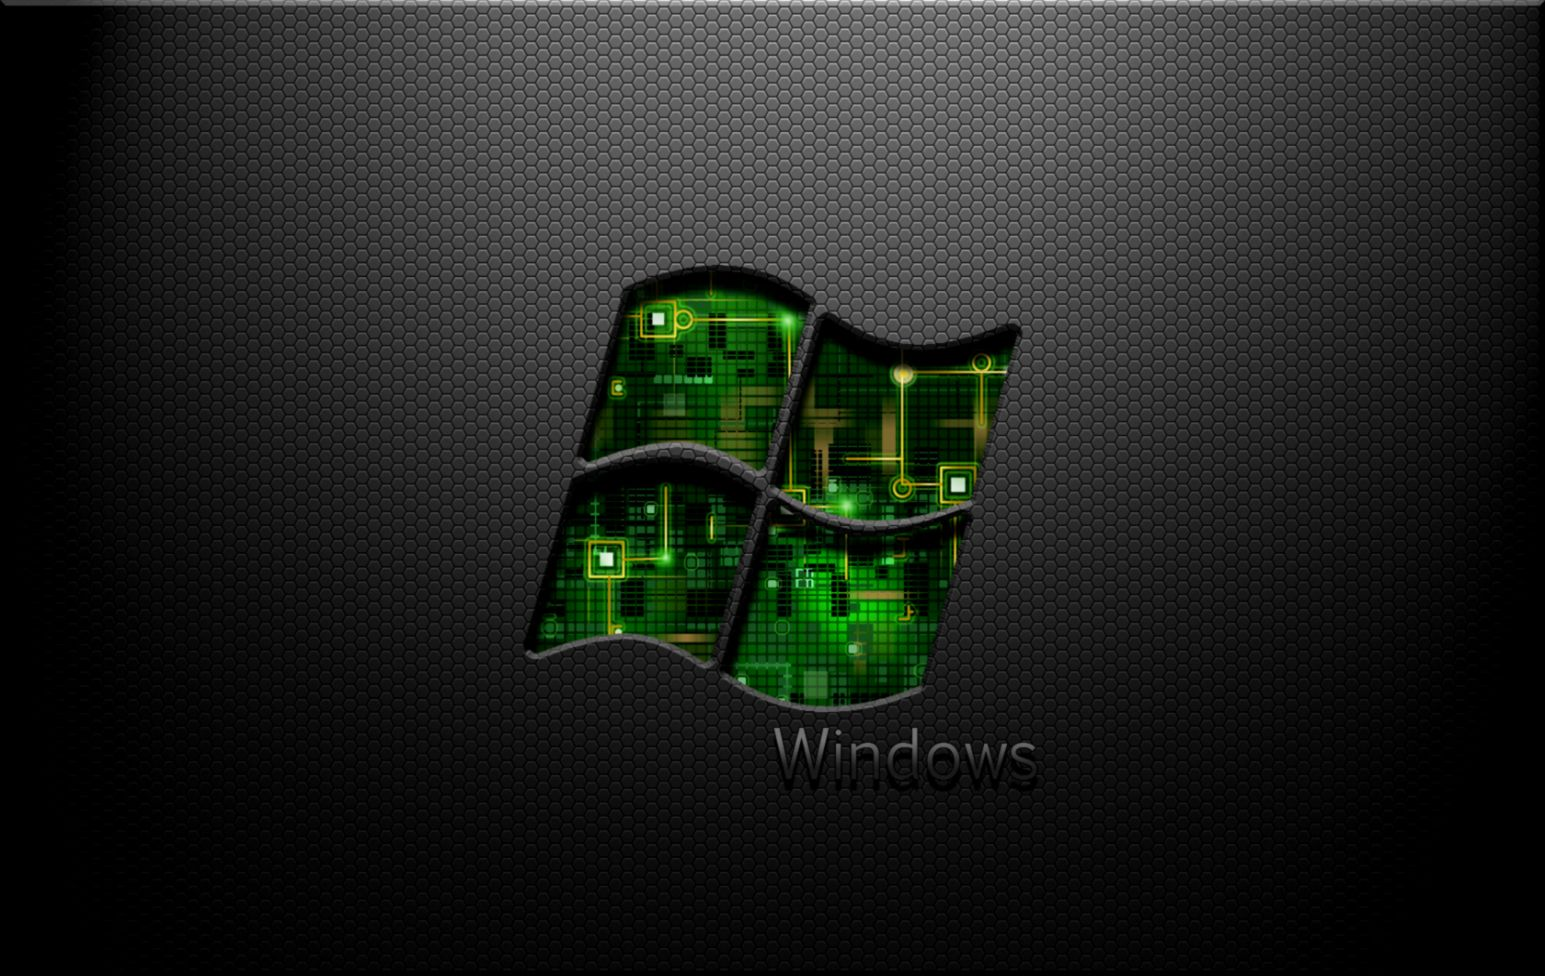 Cool Wallpapers For Windows 7 Dom Wallpapers 1545x976